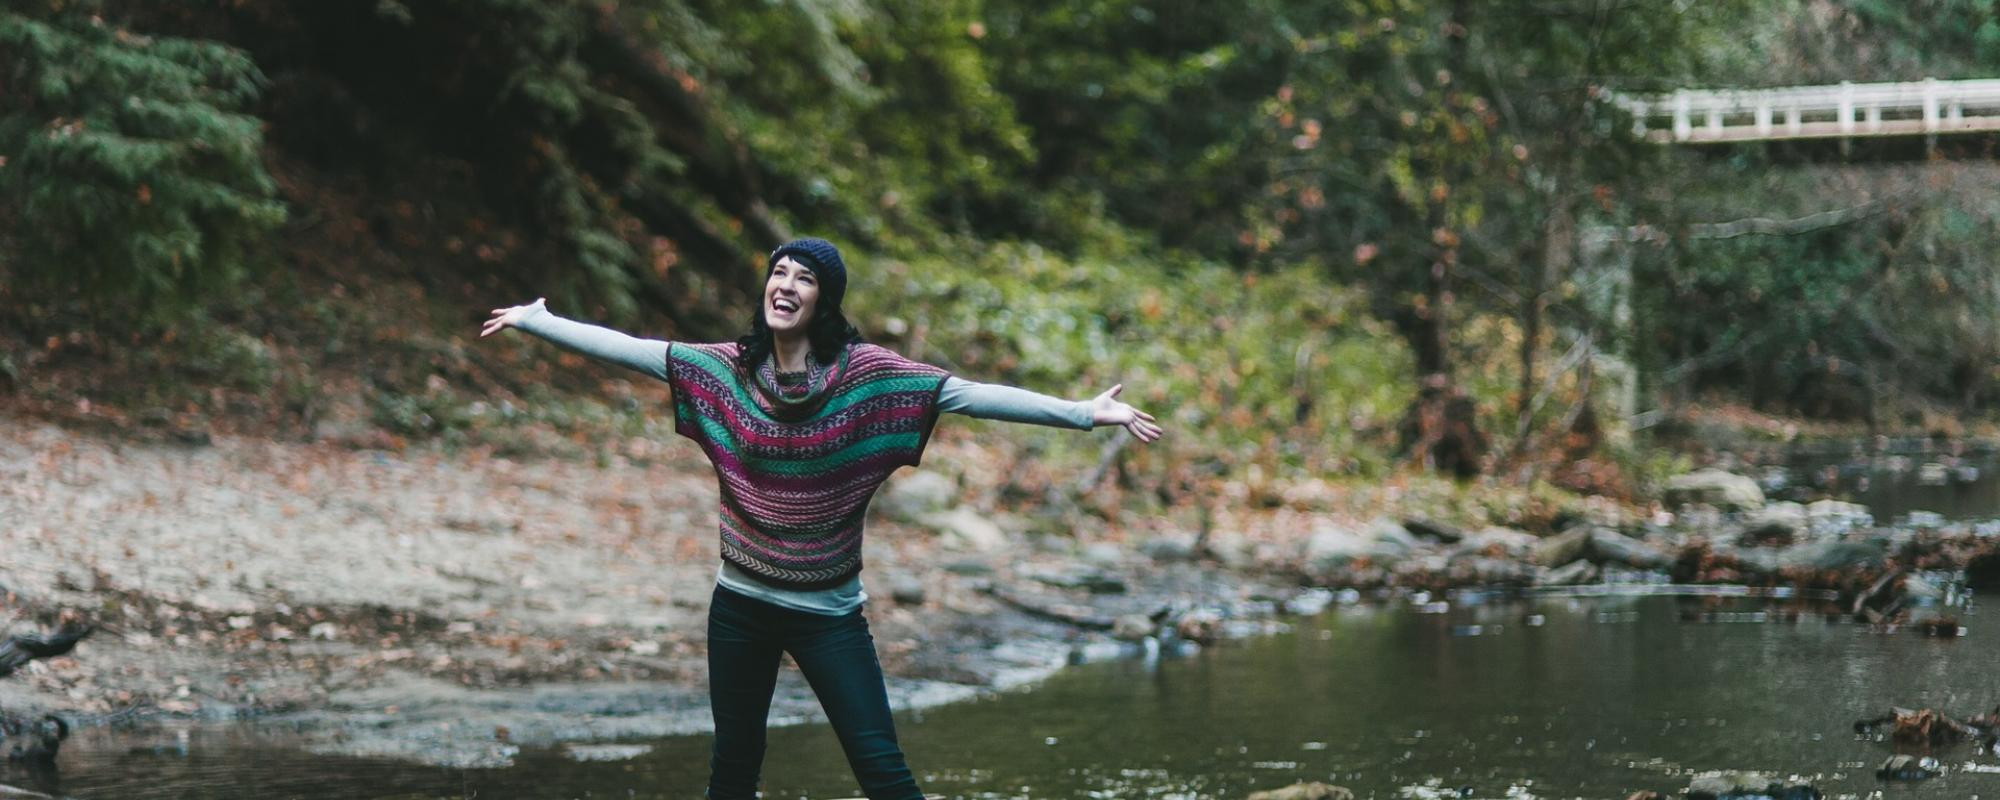 smiling woman in front of a stream of water